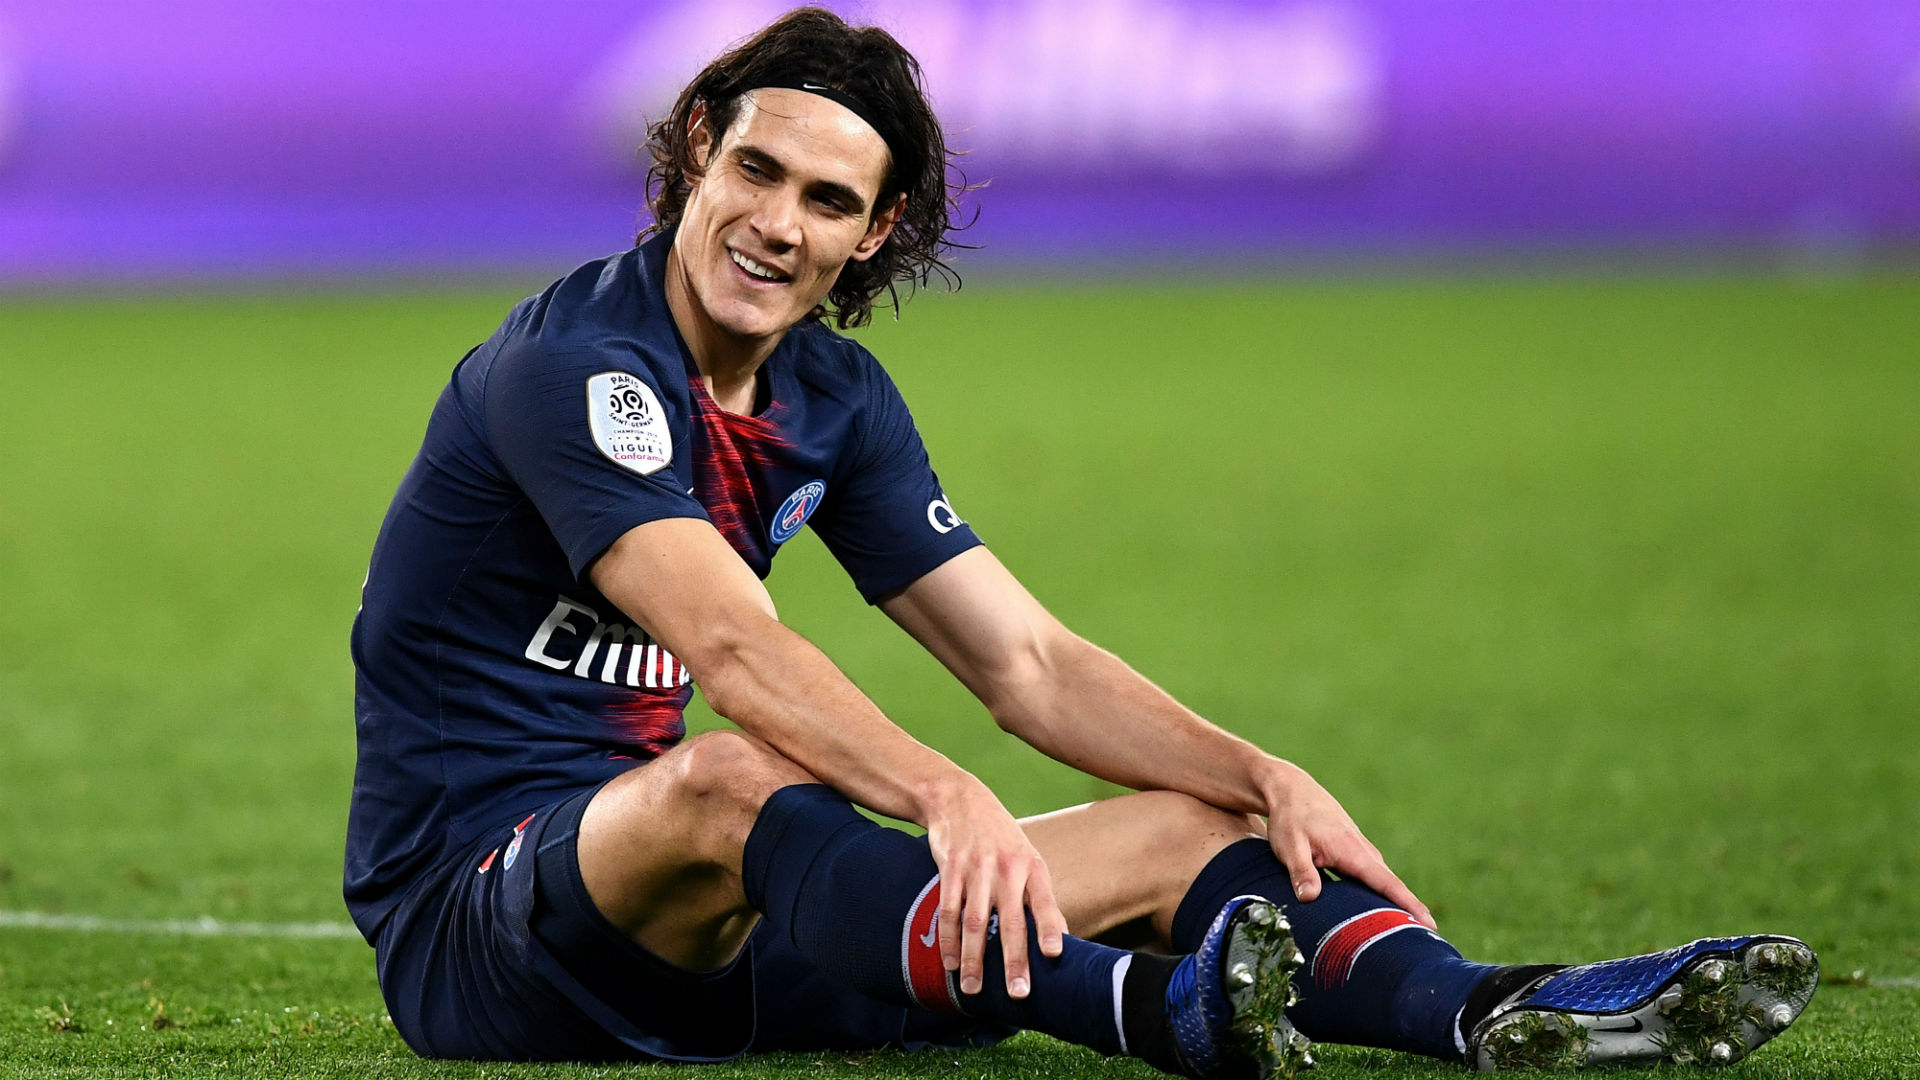 United beat PSG confirmed: Edison Cavani injured